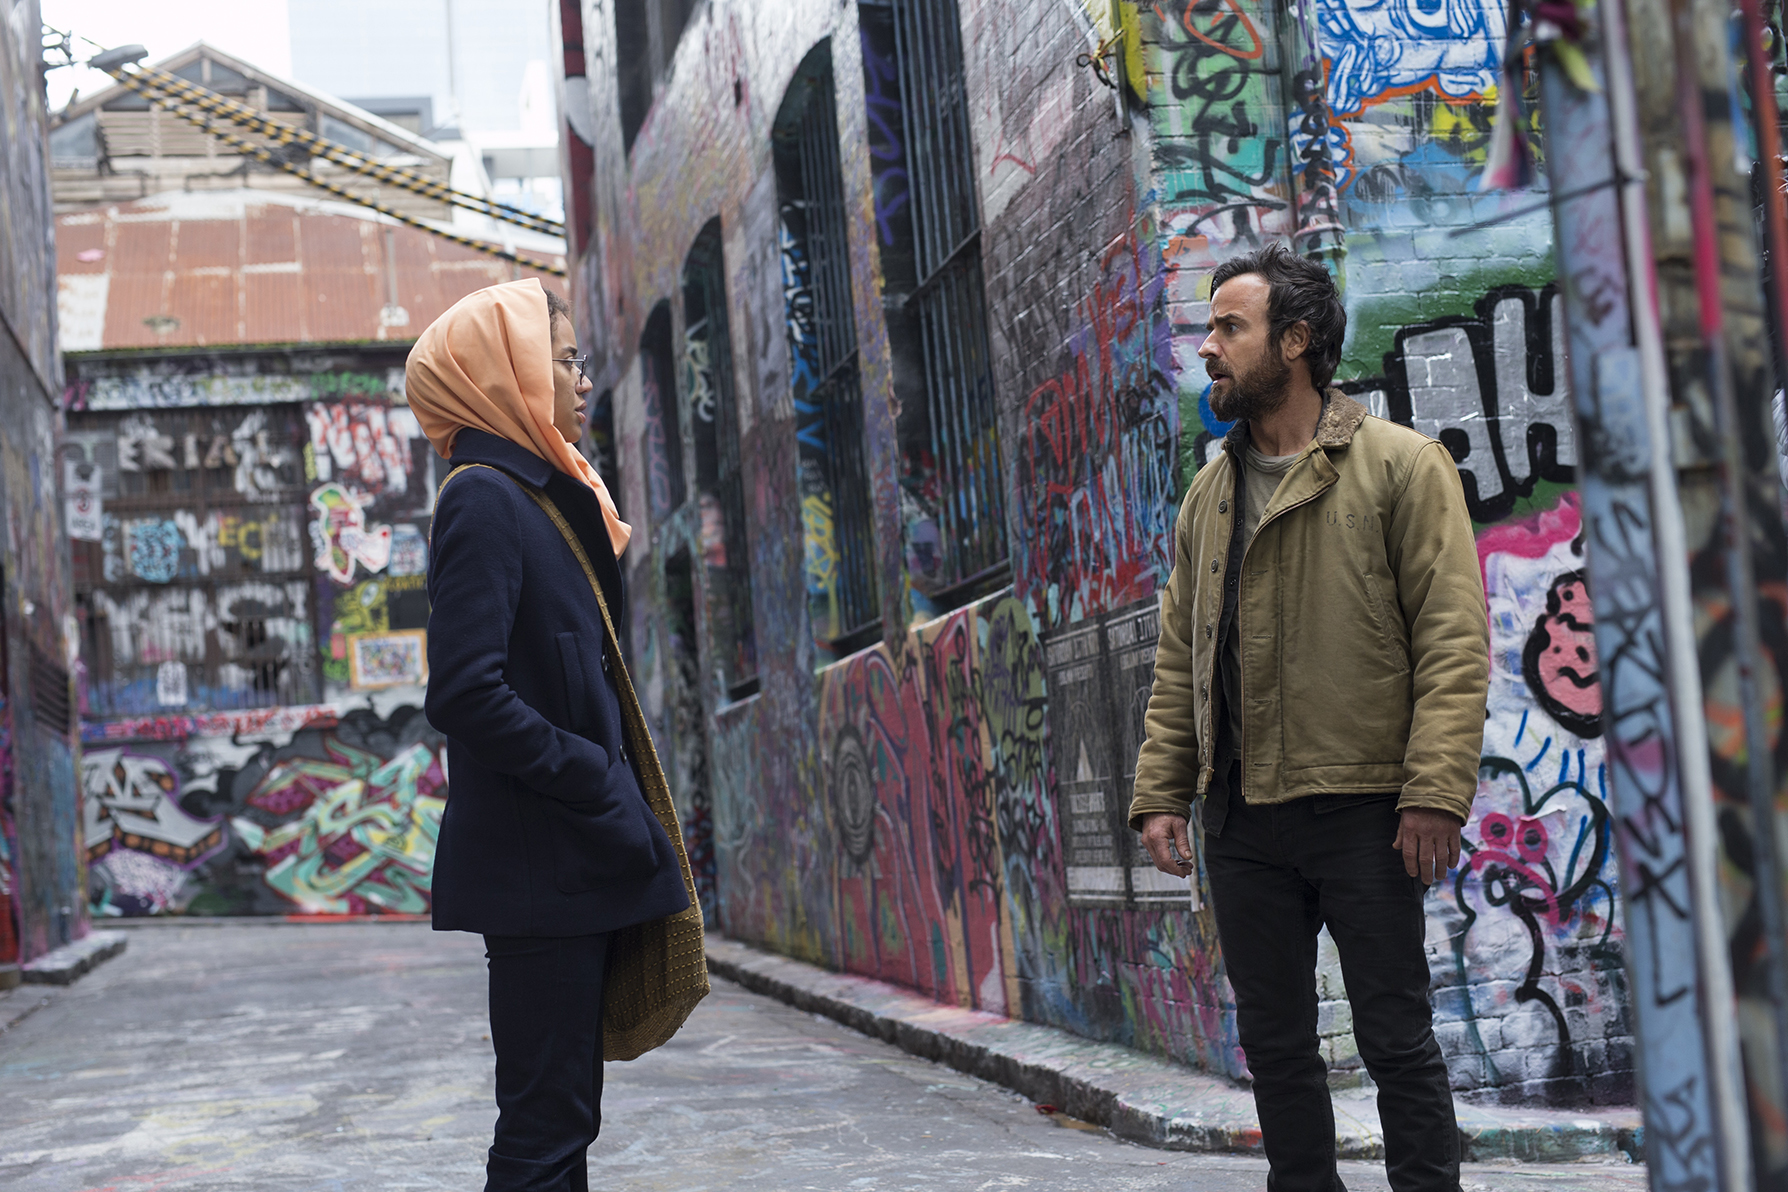 Nora and Kevin's Relationship Blows Up in 'The Leftovers'